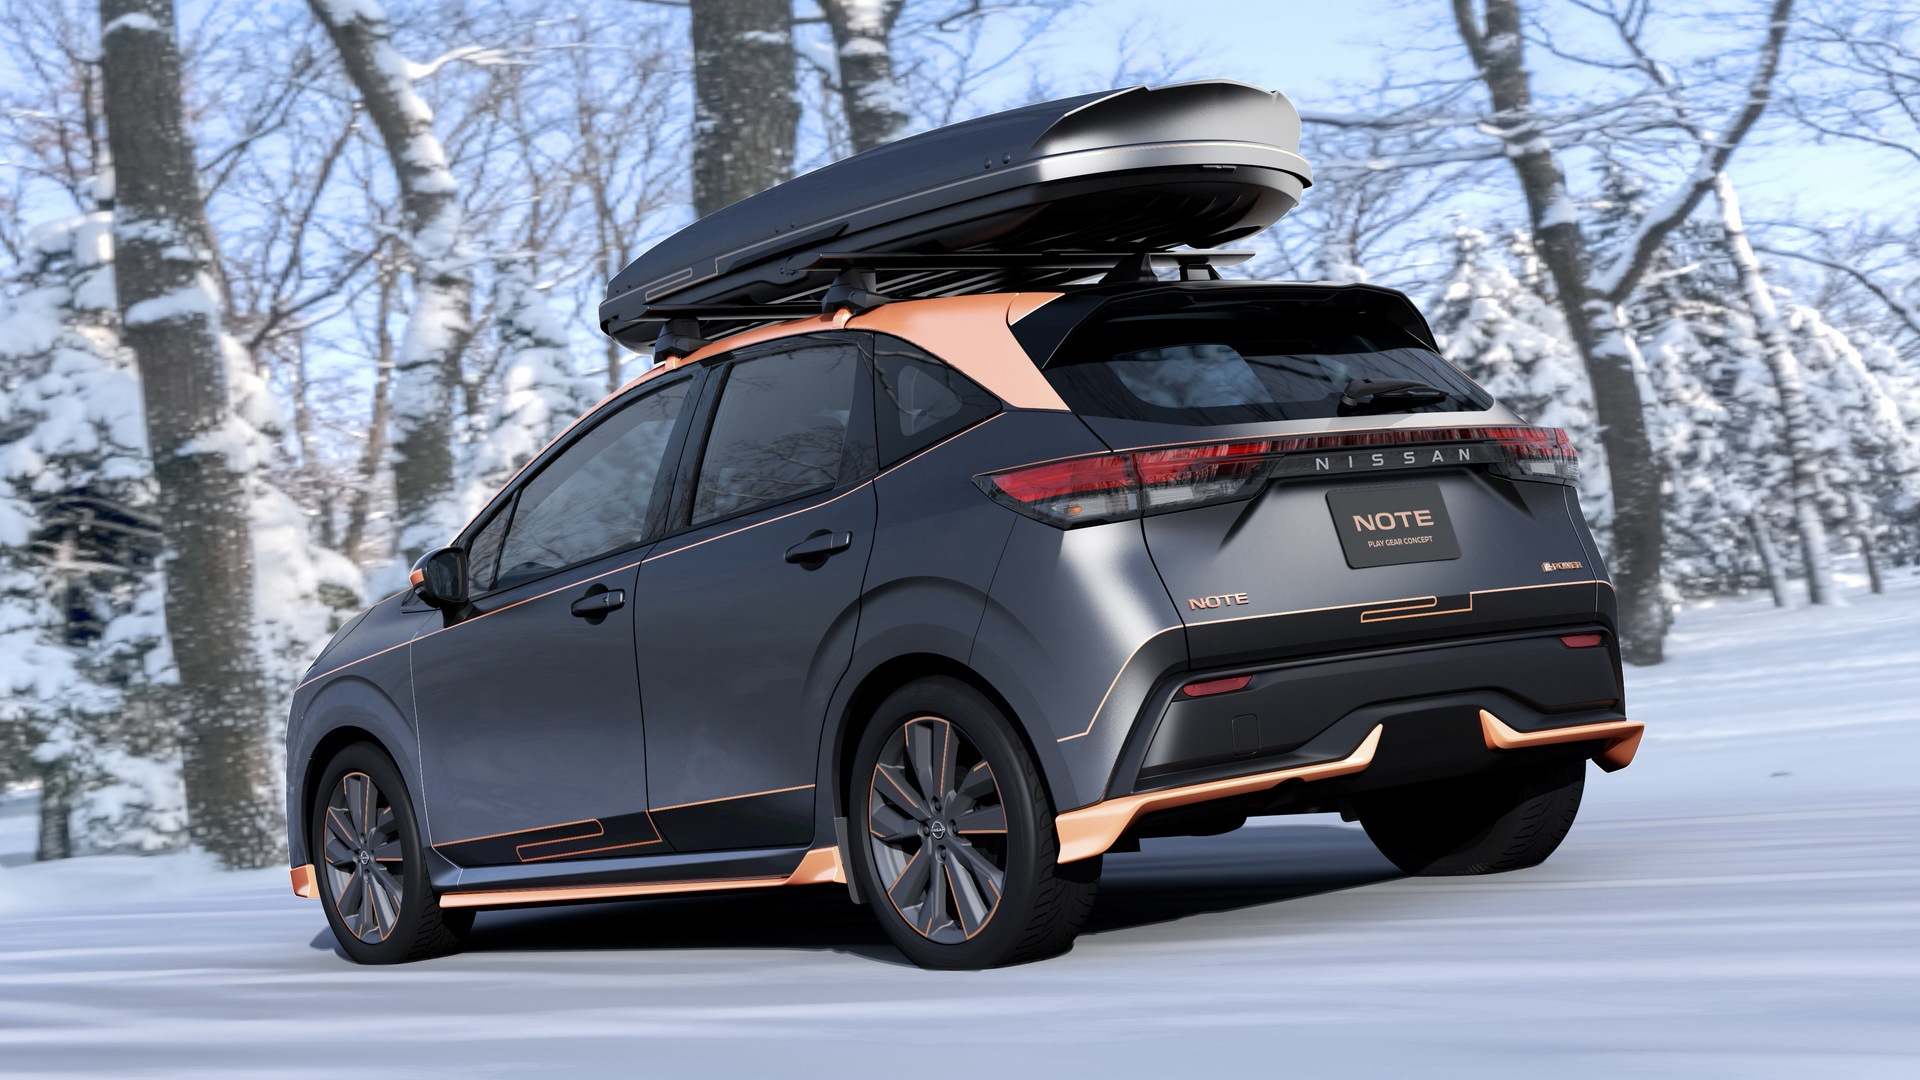 nissan-note-play-gear-concept-tokyo-2021-2